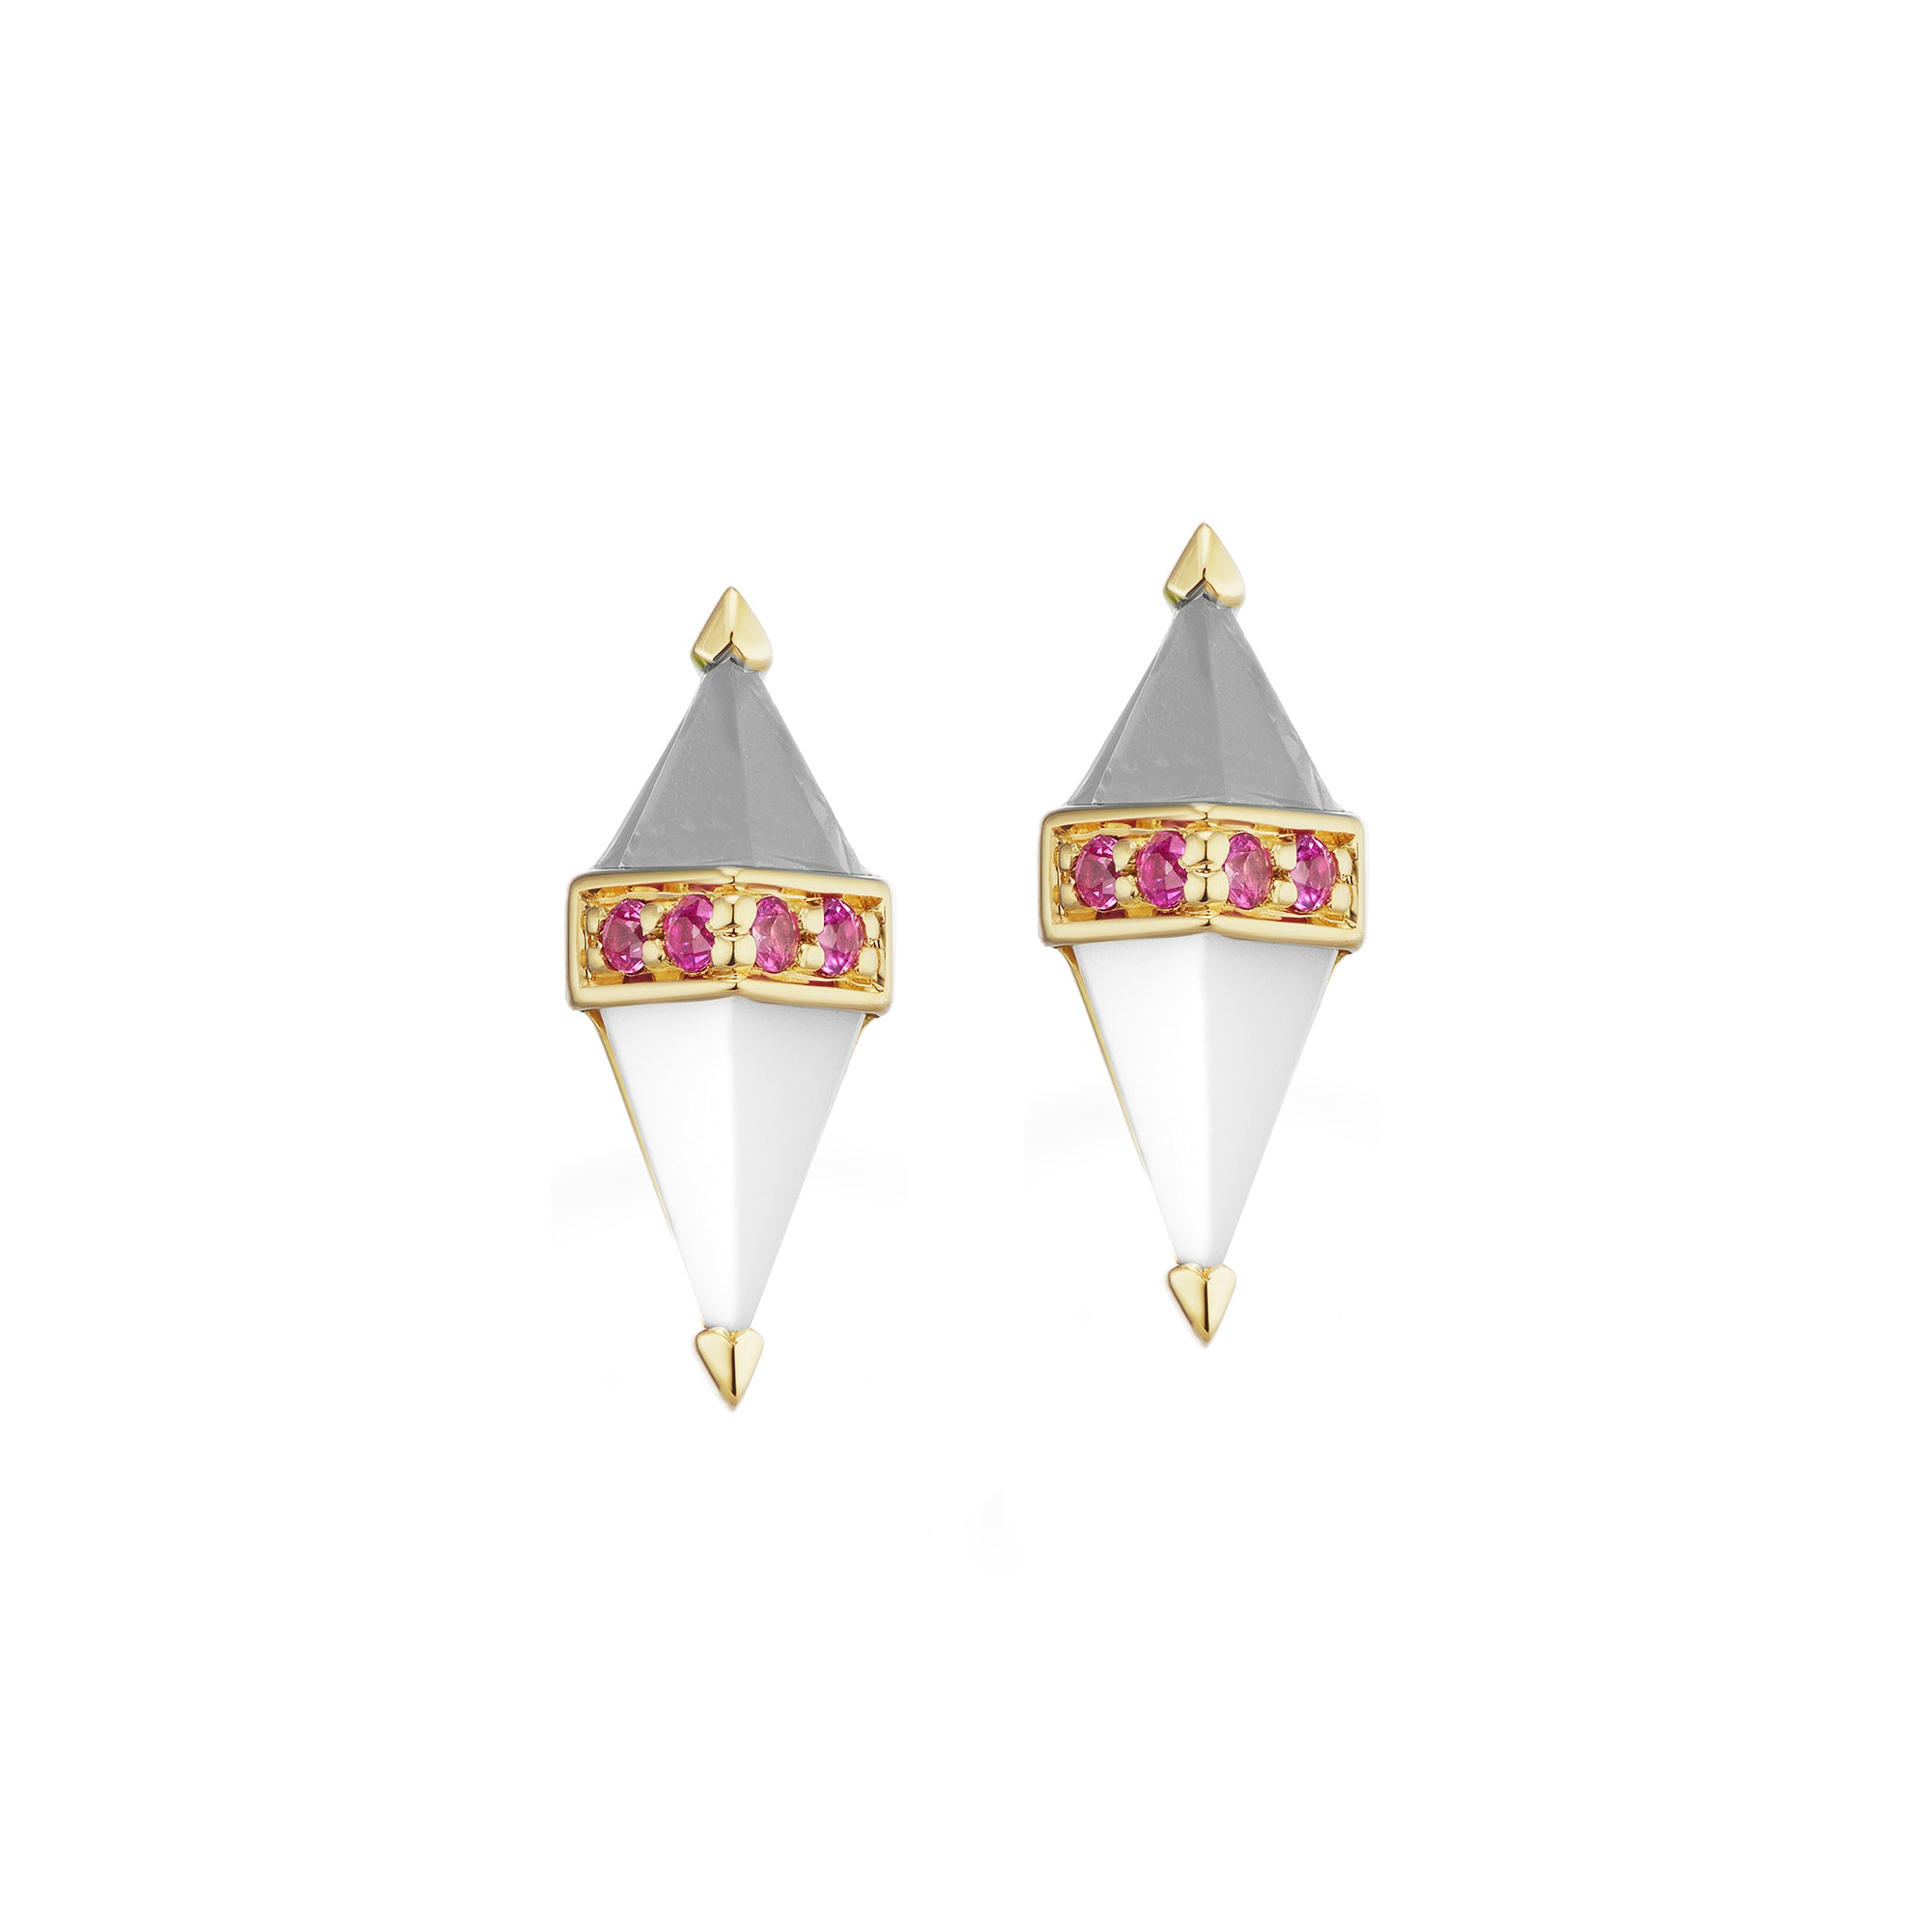 White Pietra Studs by Sorellina for Broken English Jewelry